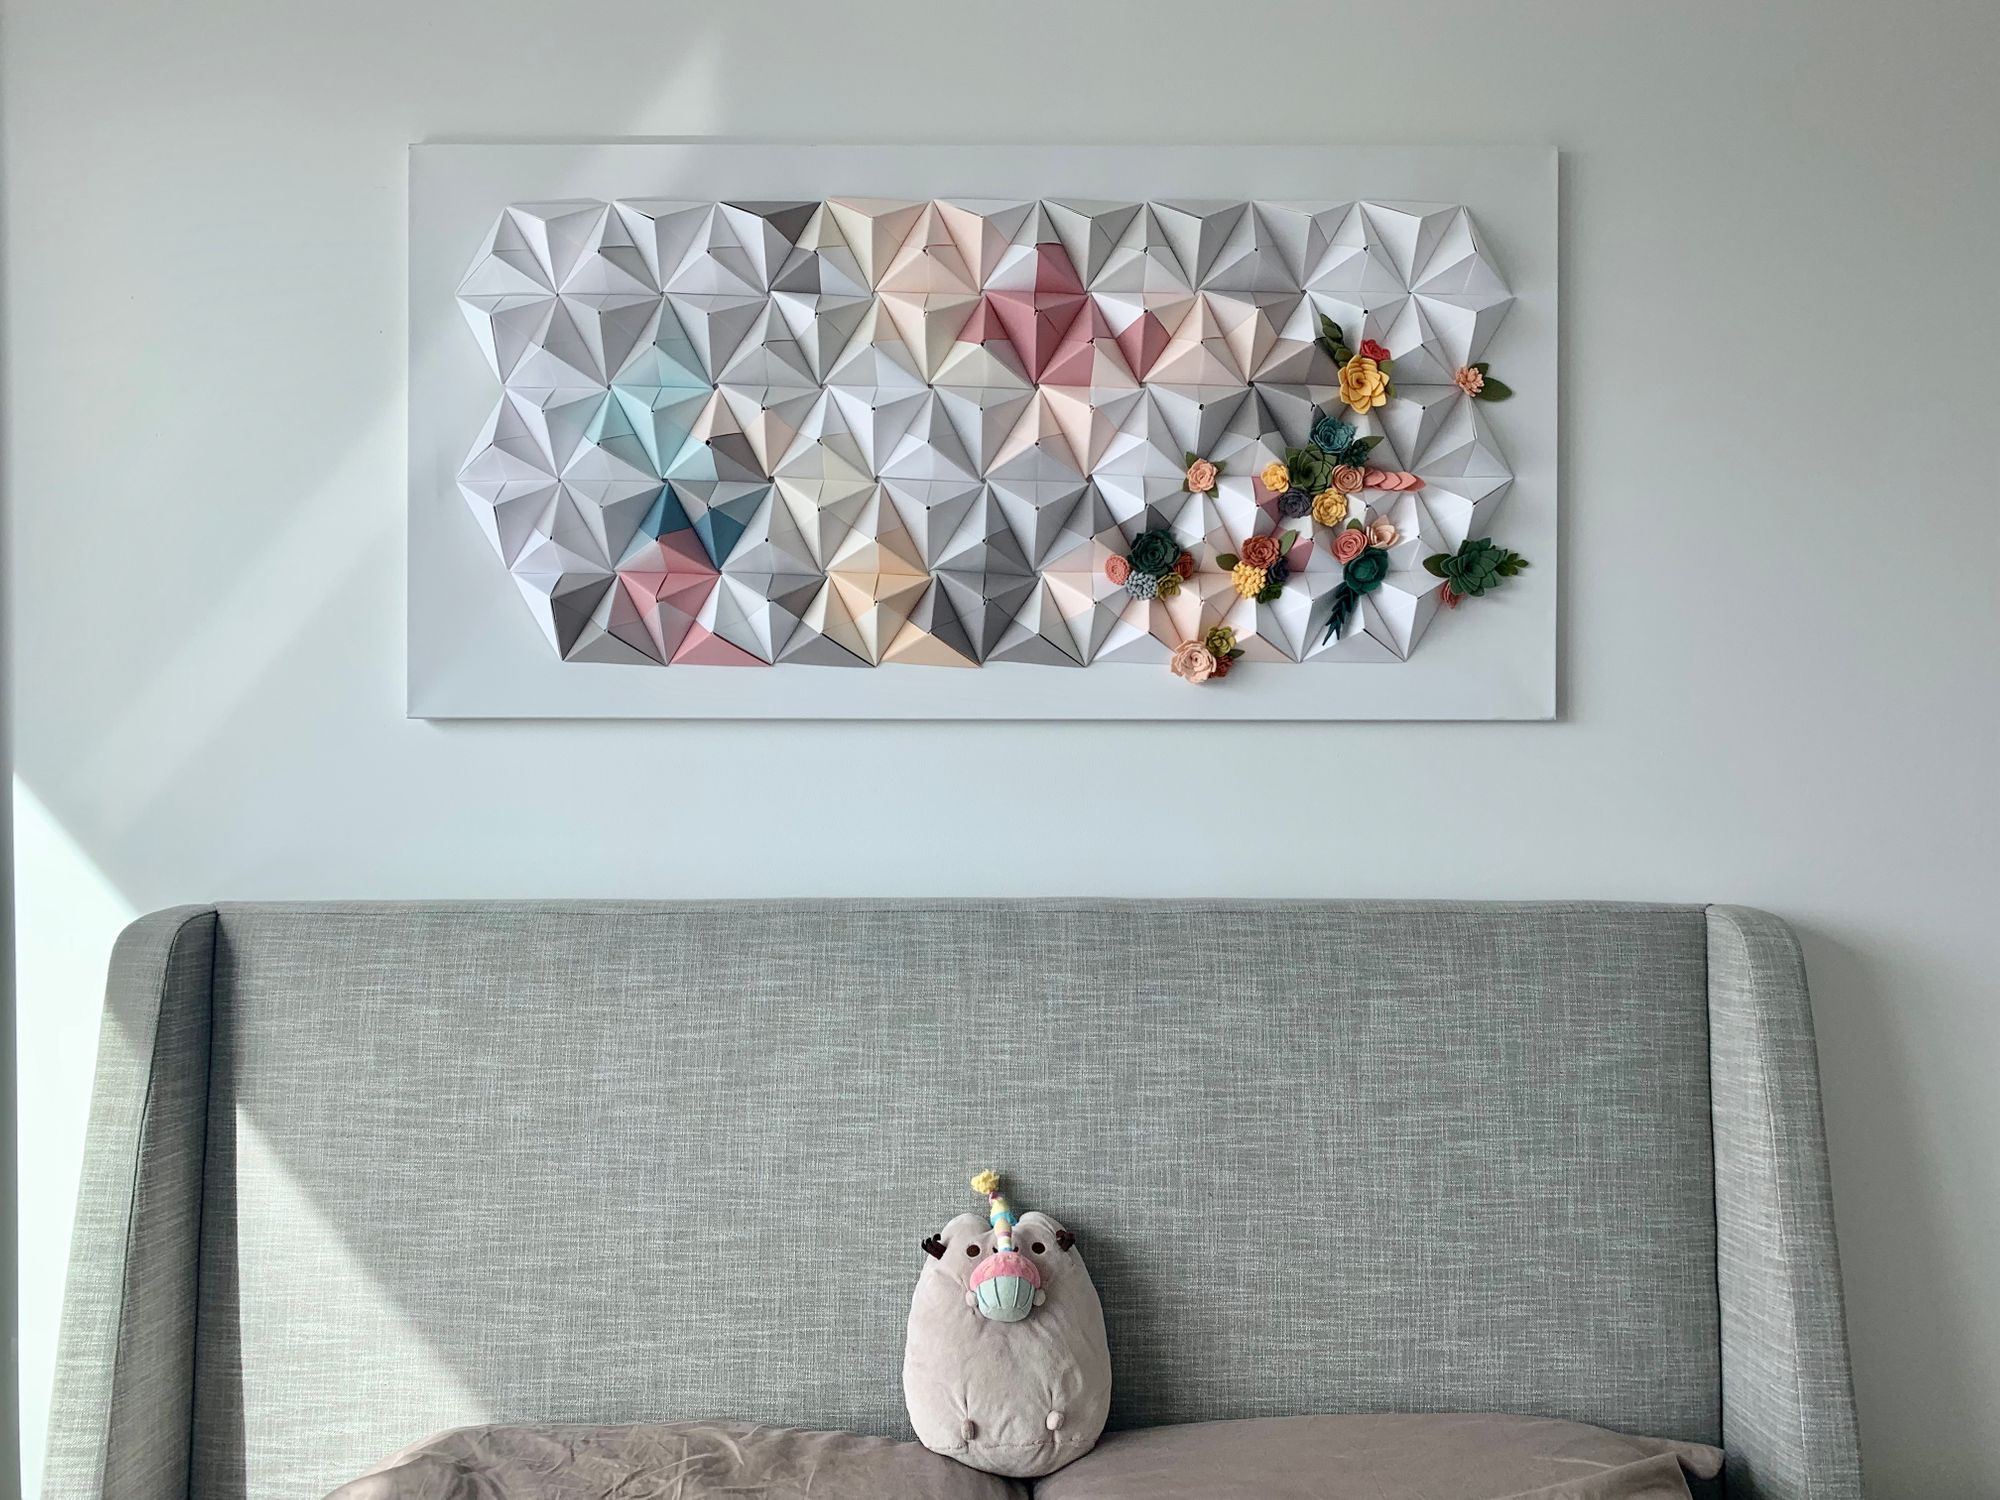 Serenity: An origami wall sculpture connected with Google Home